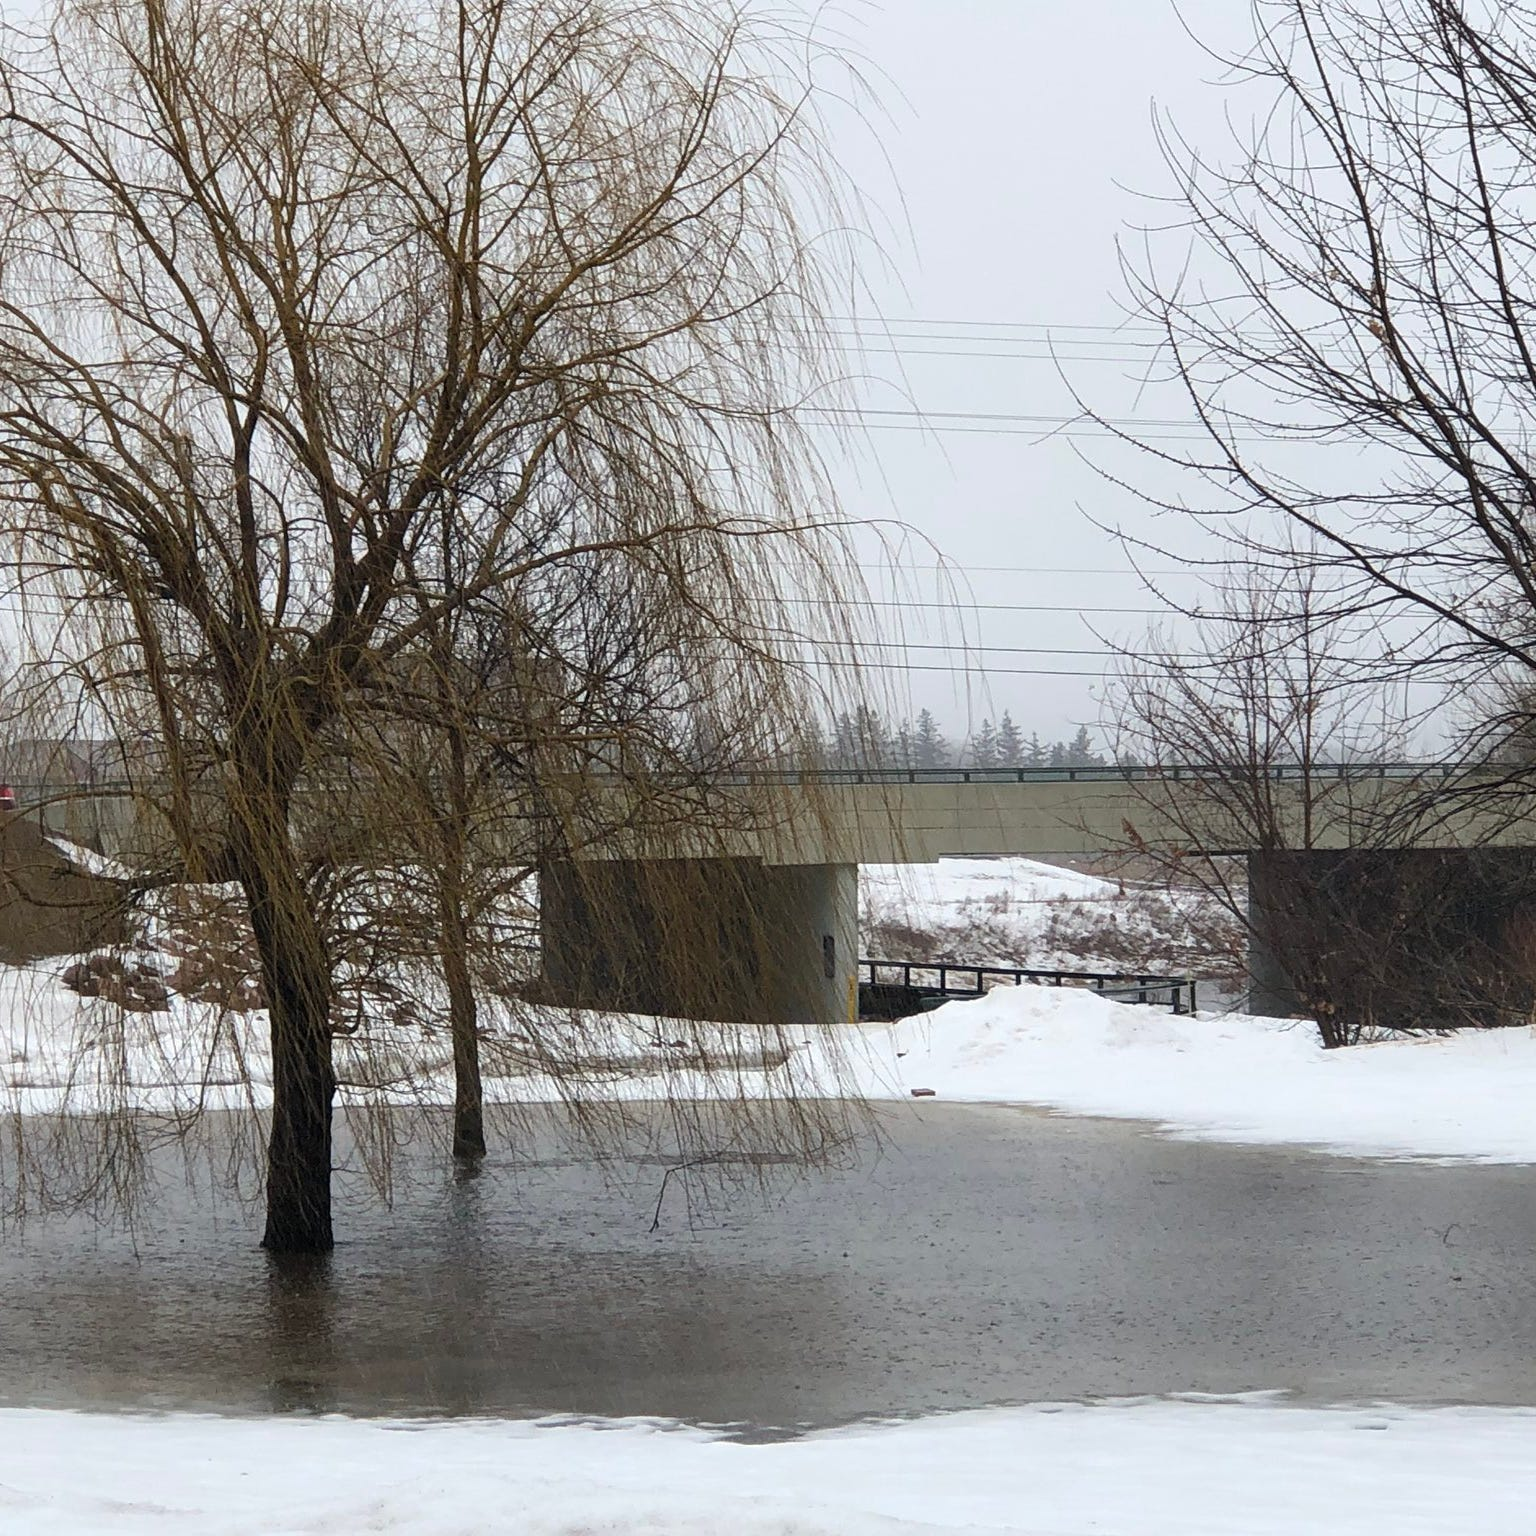 NWS forecast: James River, Big Sioux River north of Sioux Falls could see worst flooding